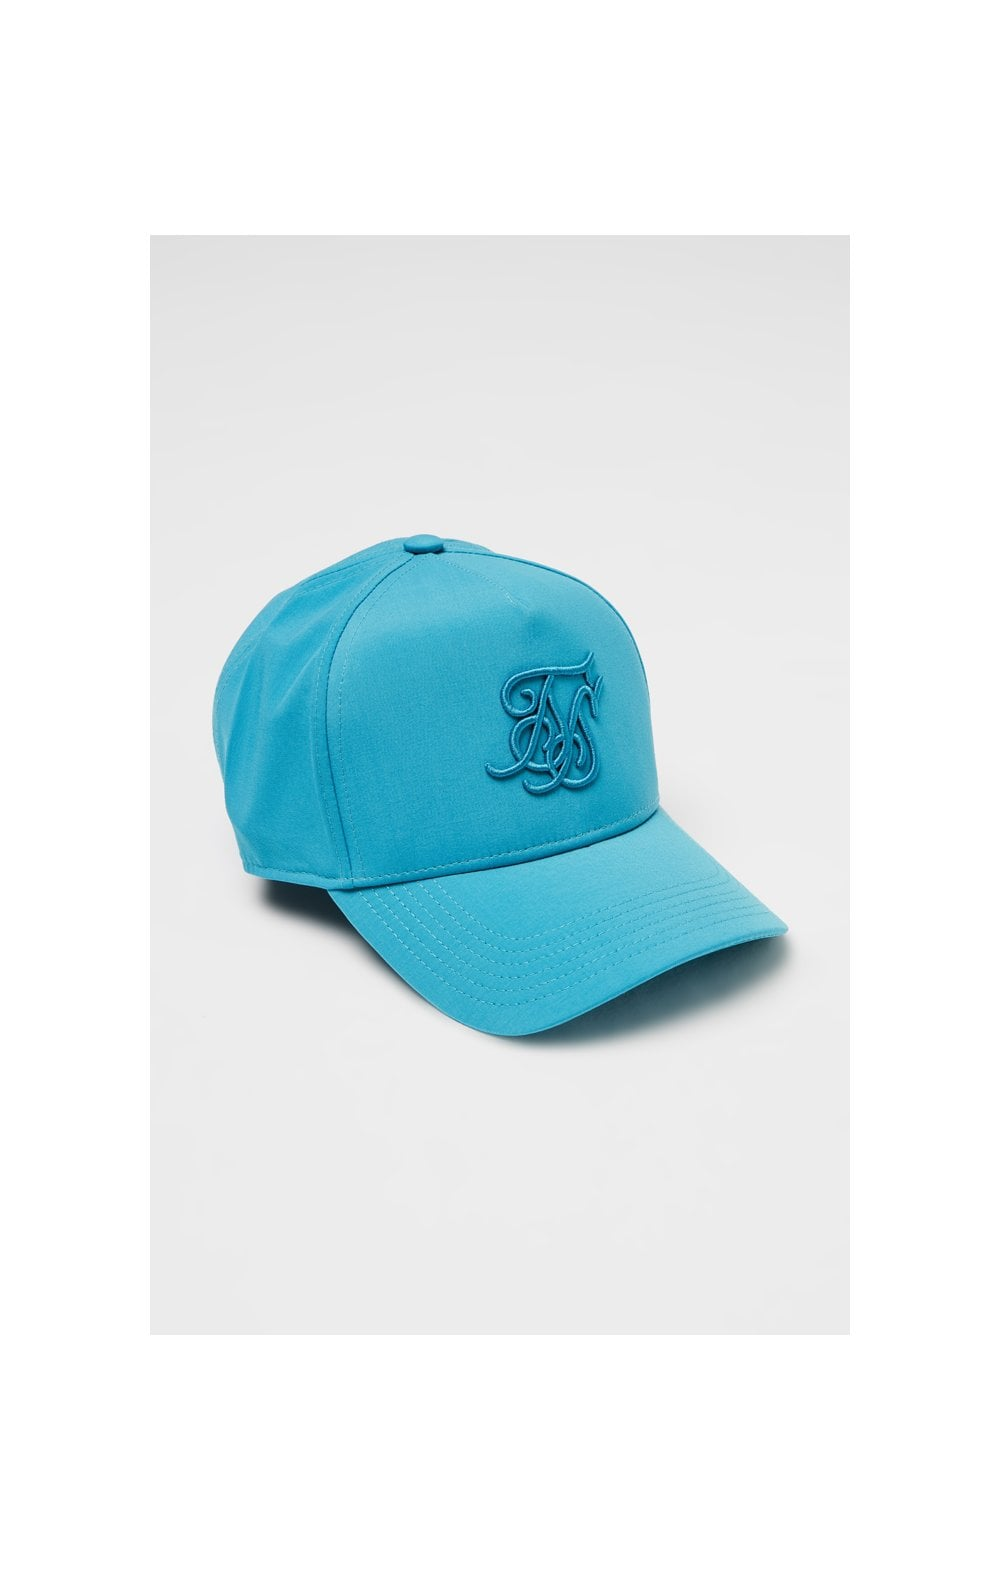 SikSilk Crushed Nylon Full Trucker - Teal